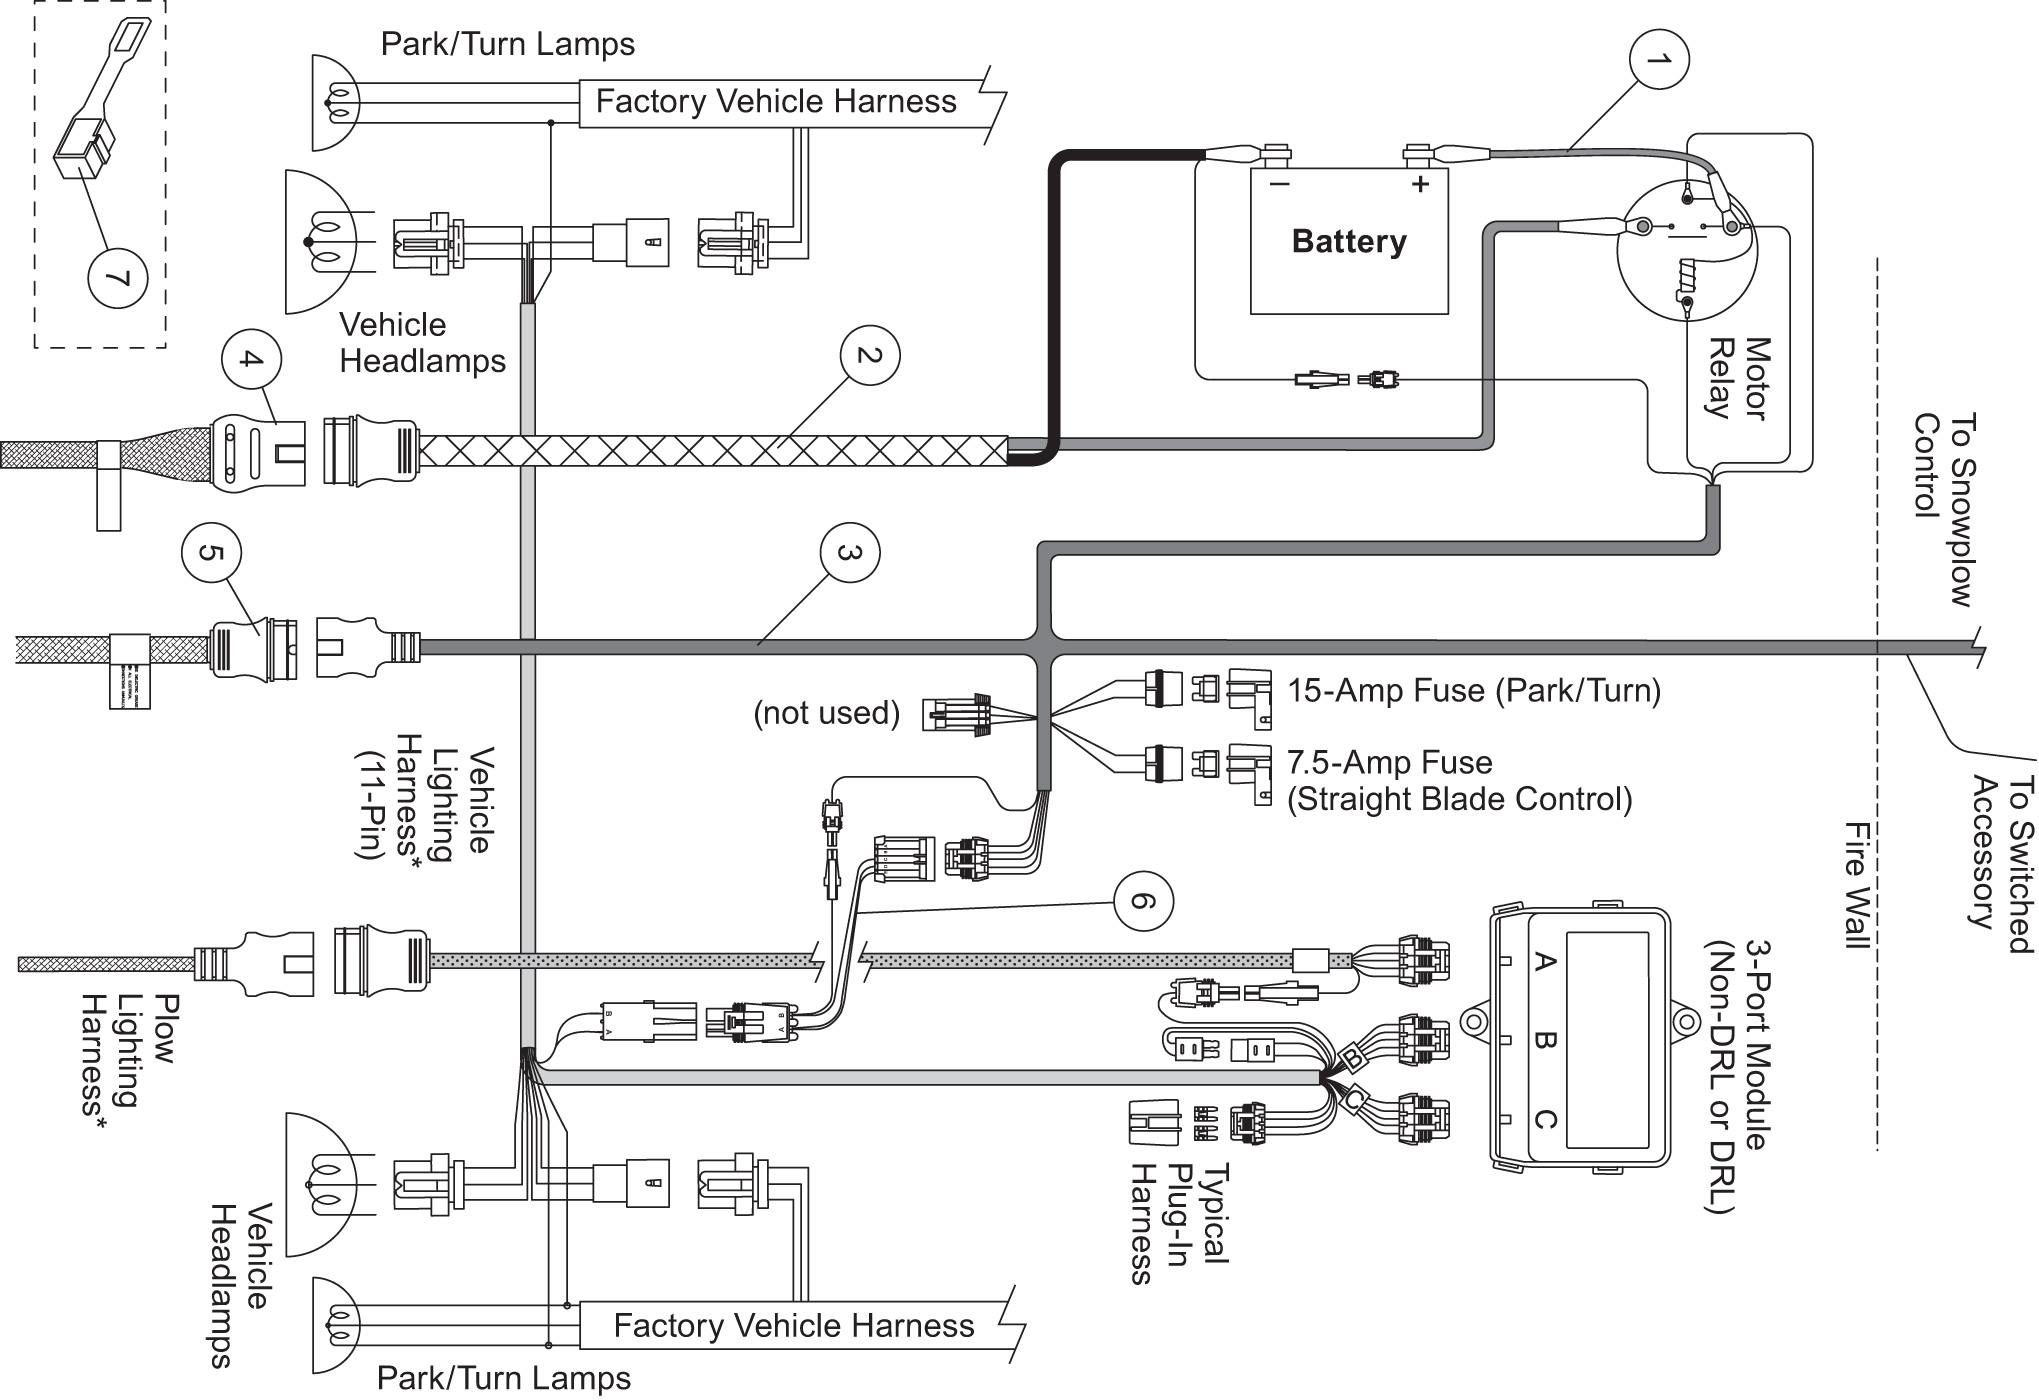 Salt Dogg Spreader Wiring Diagram on buyers salt spreader diagram, salt dogg controller wiring diagram, western salt spreader parts diagram,